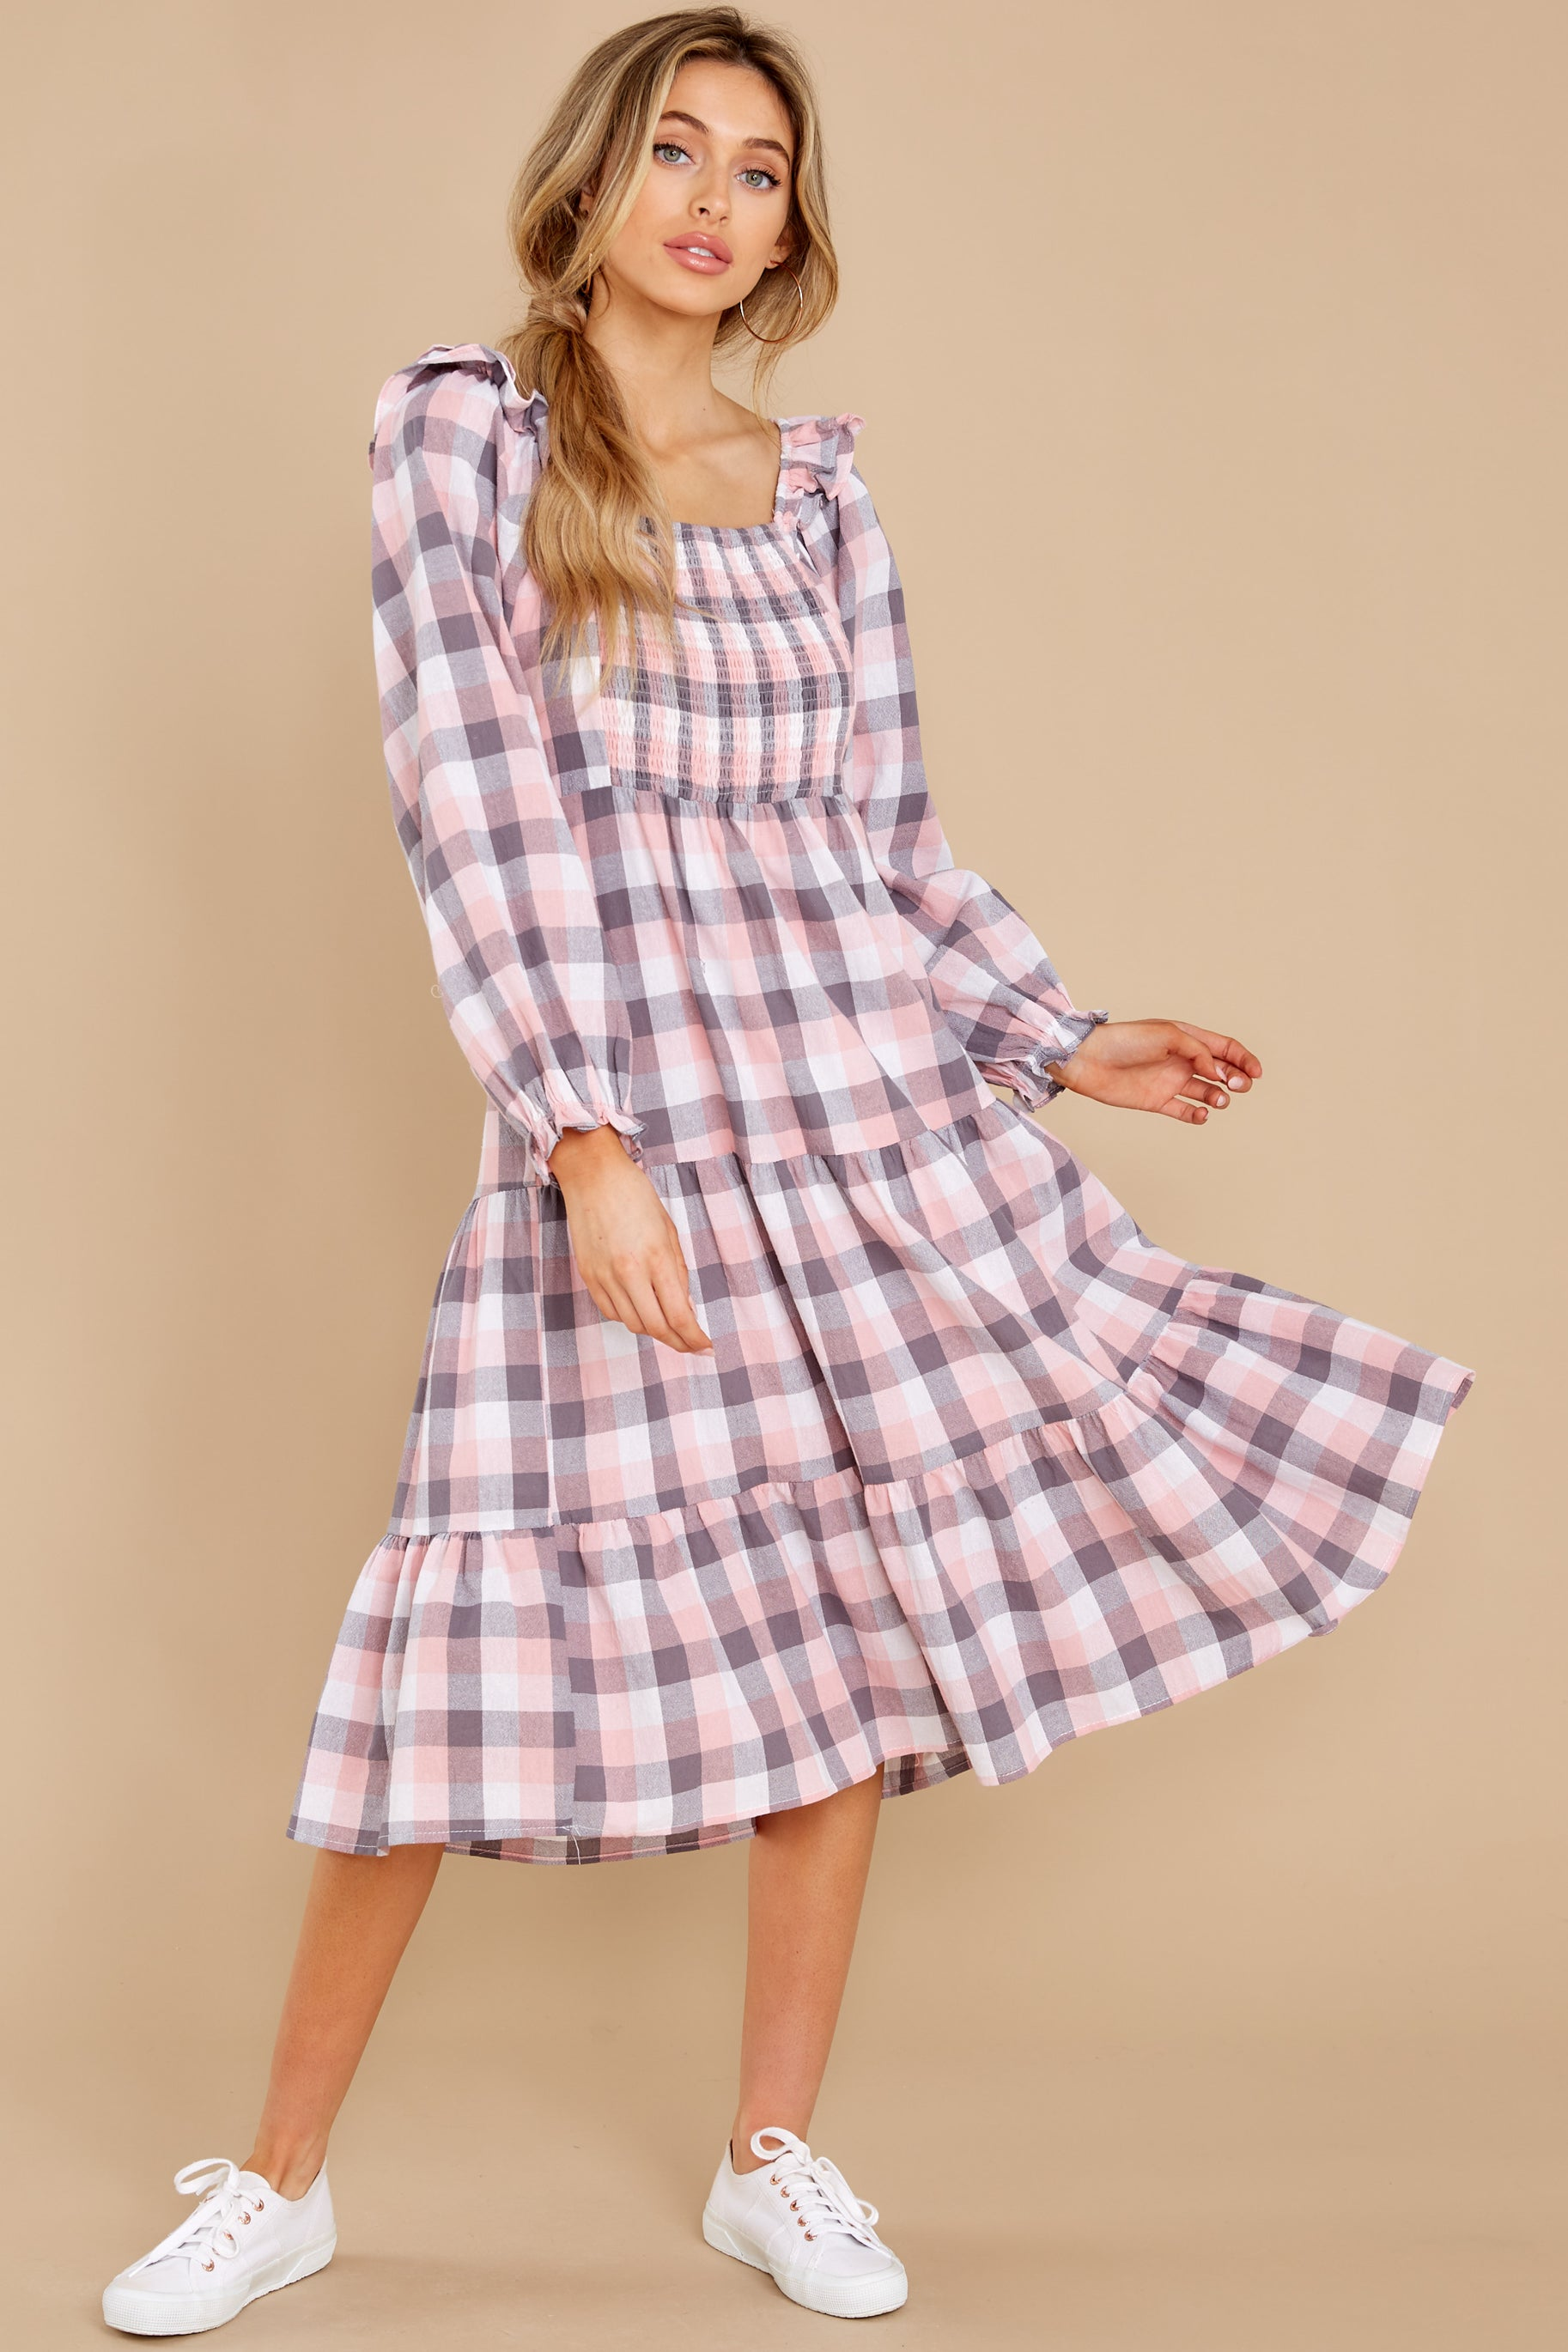 1 Midday Stroll Pink Plaid Midi Dress at reddress.com